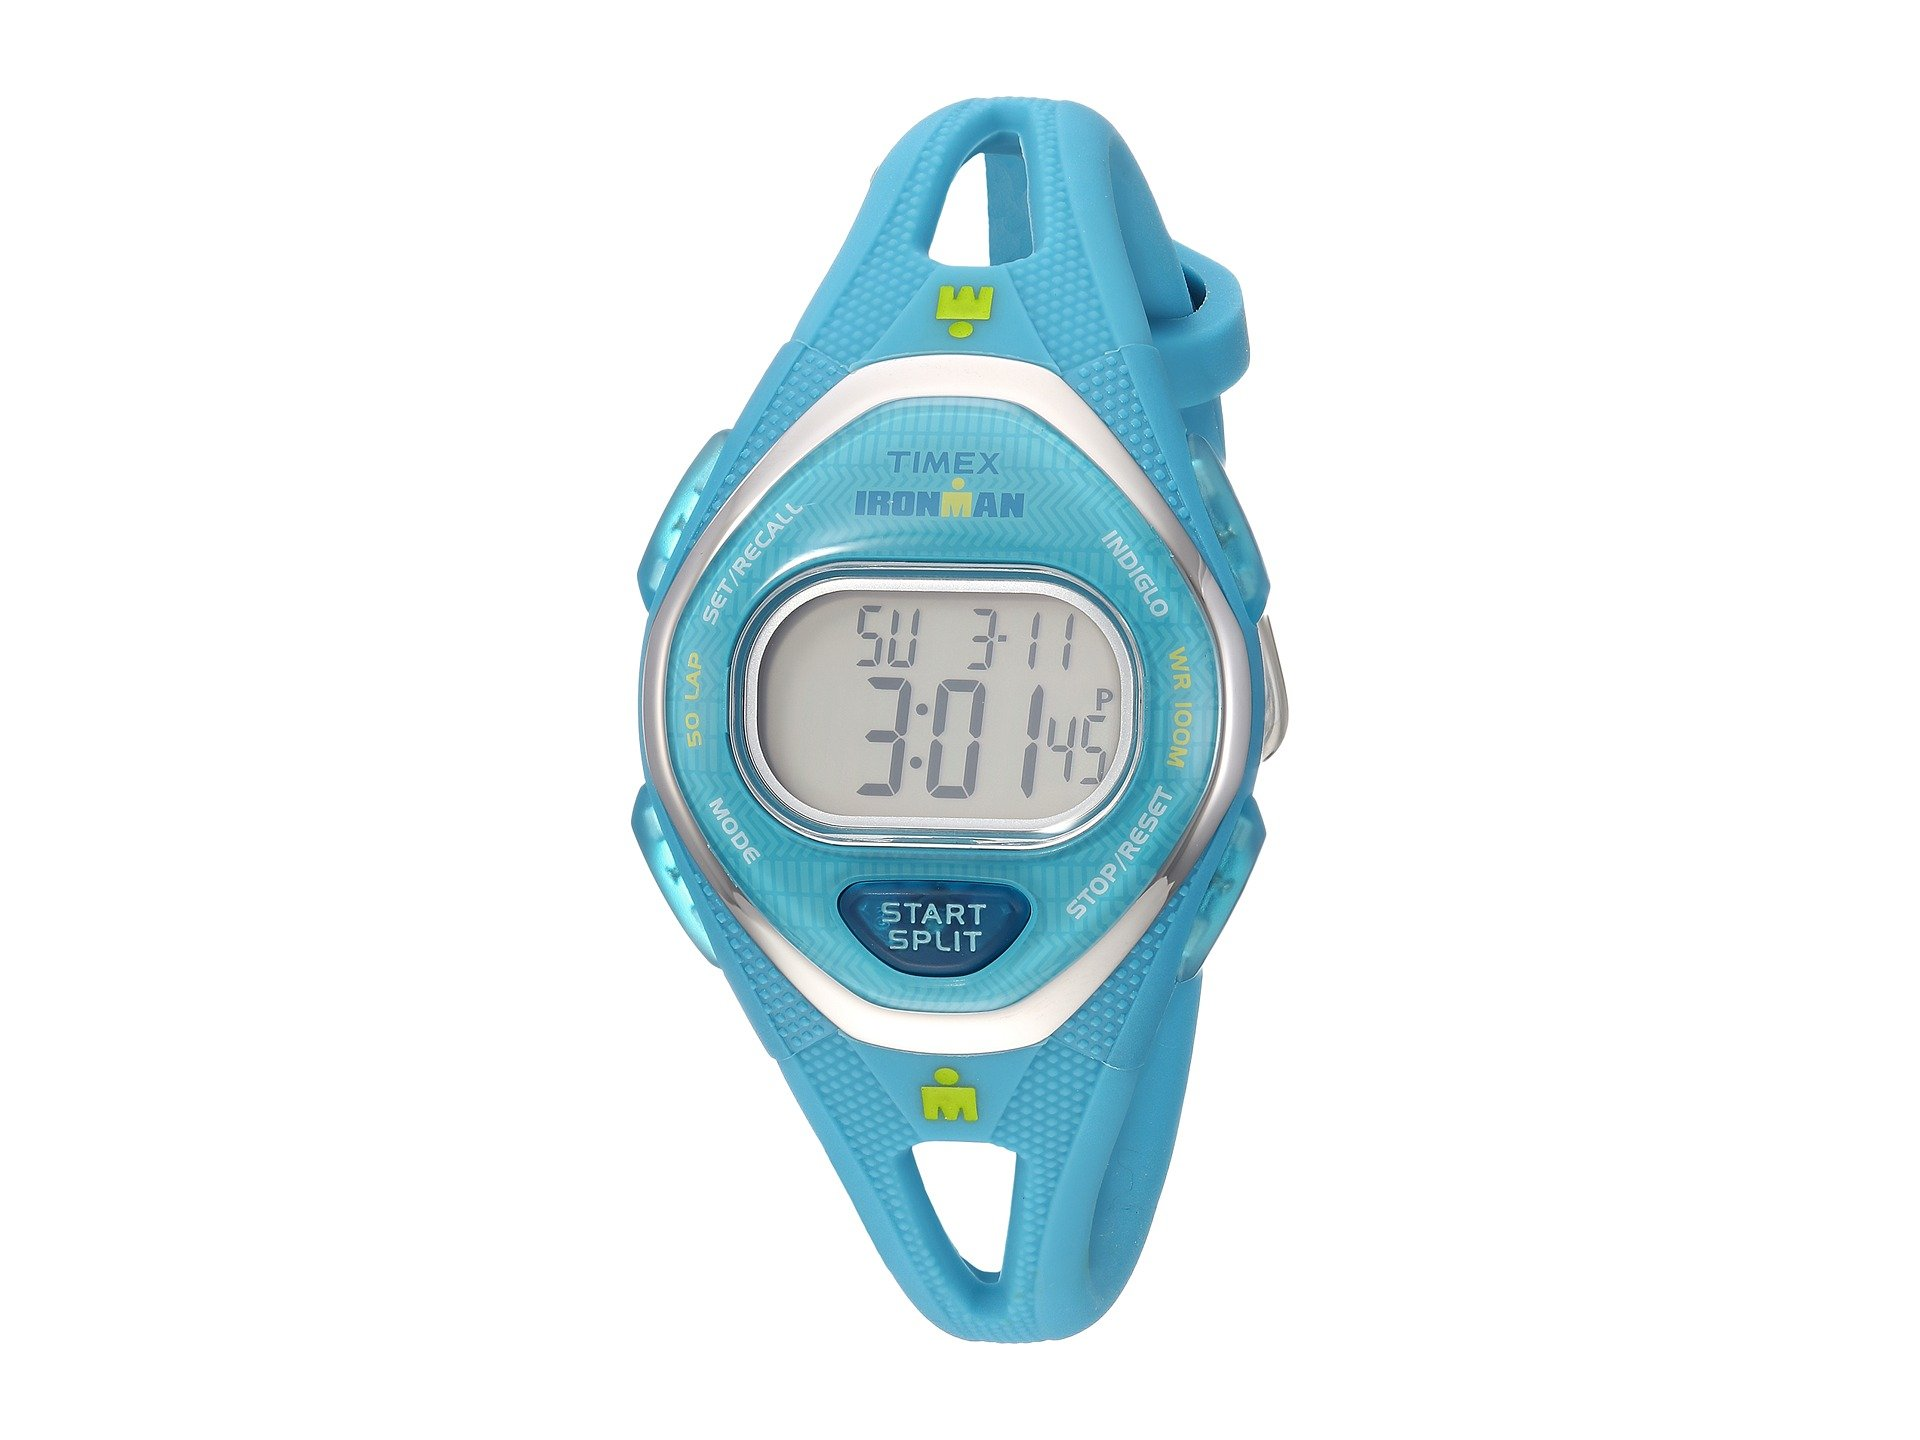 TIMEX Ironman Sleek 50 Mid-Size Silicone Strap, Teal